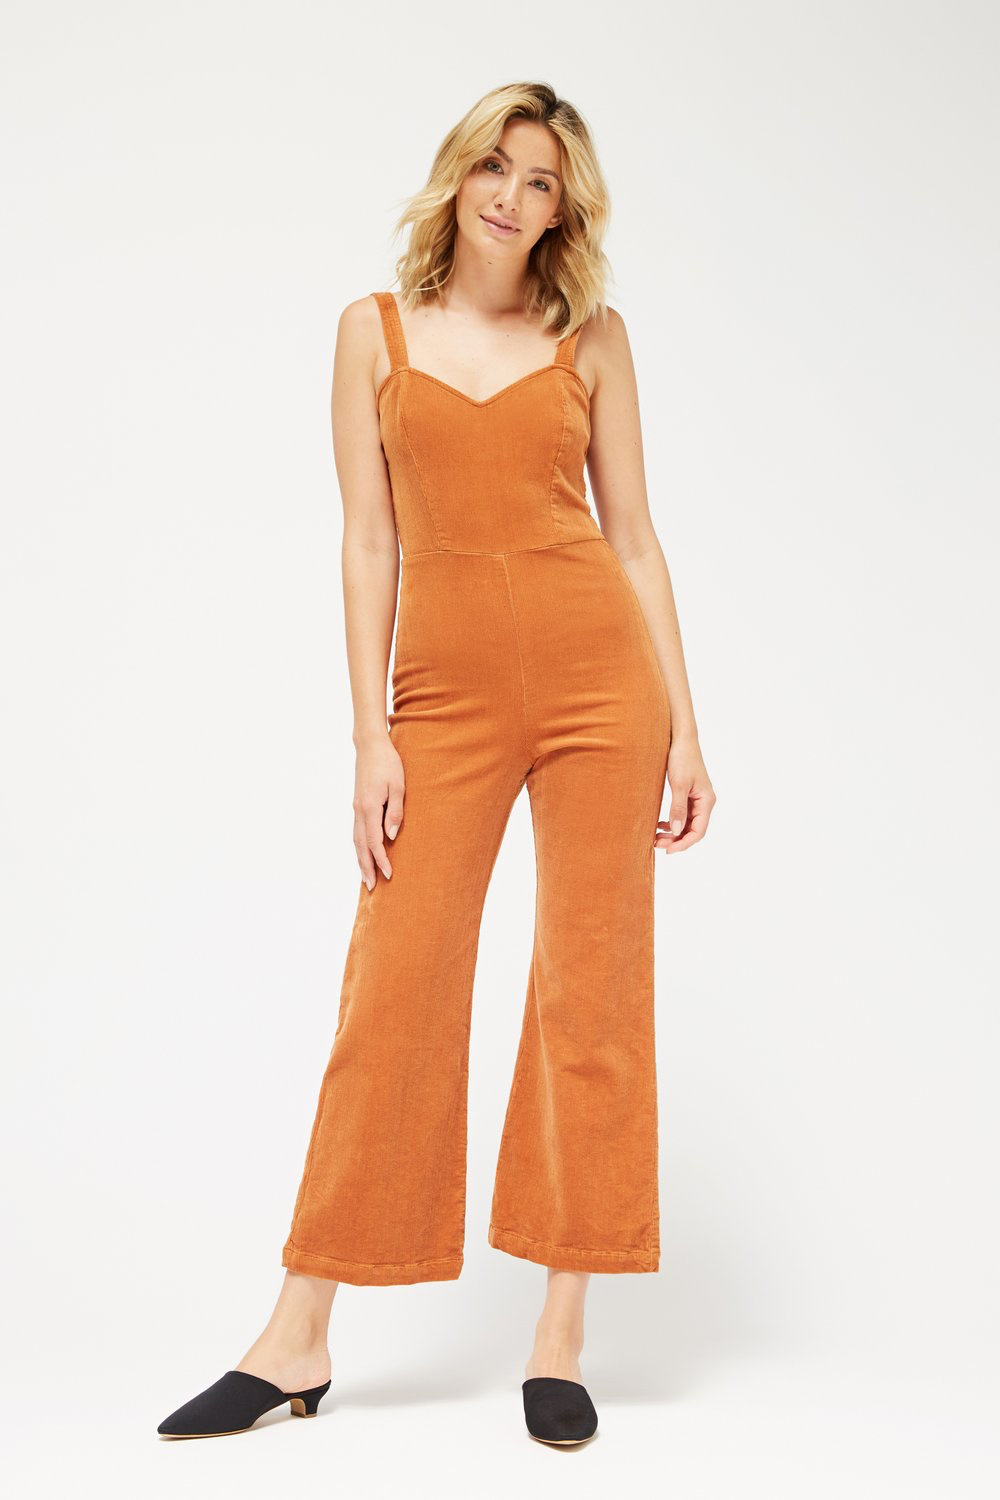 Lacausa Rosie Jumpsuit in Fox